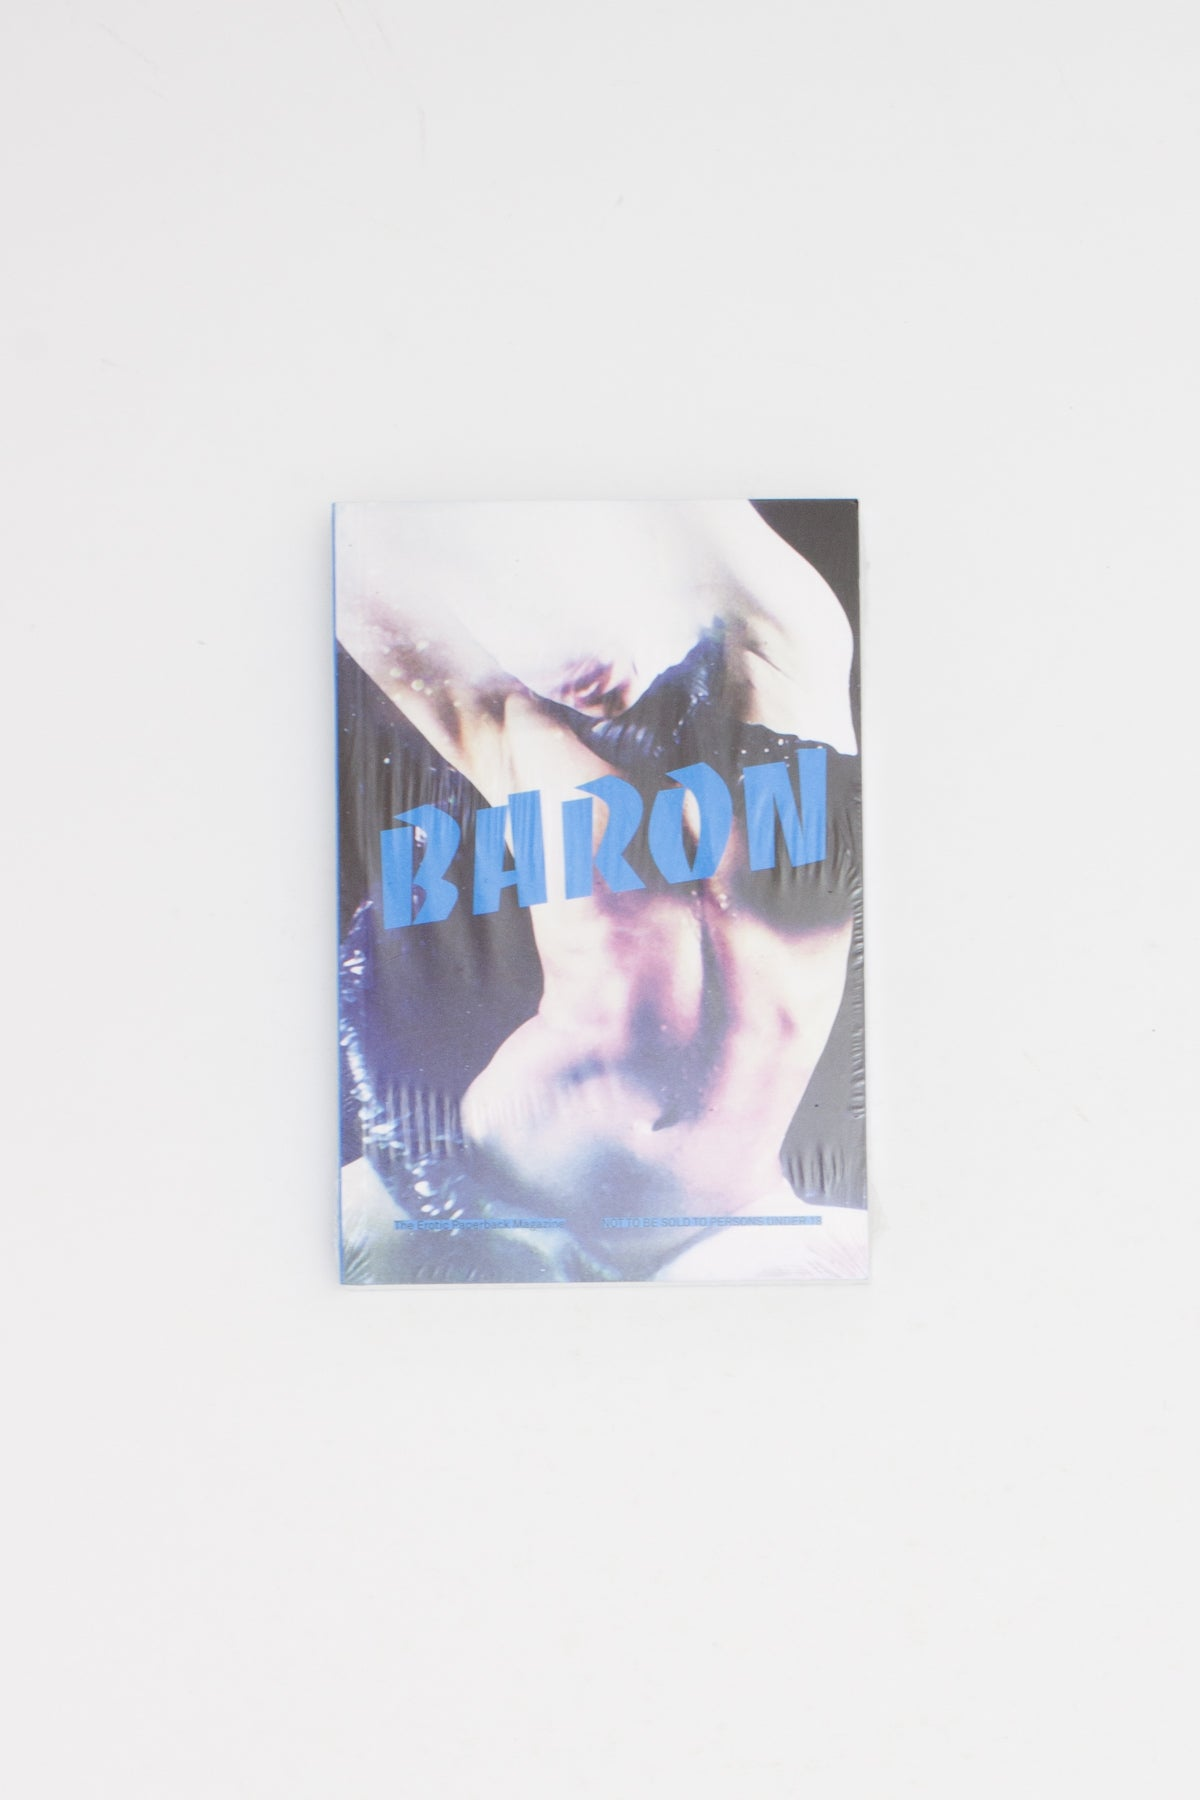 BARON. (Issue 3).